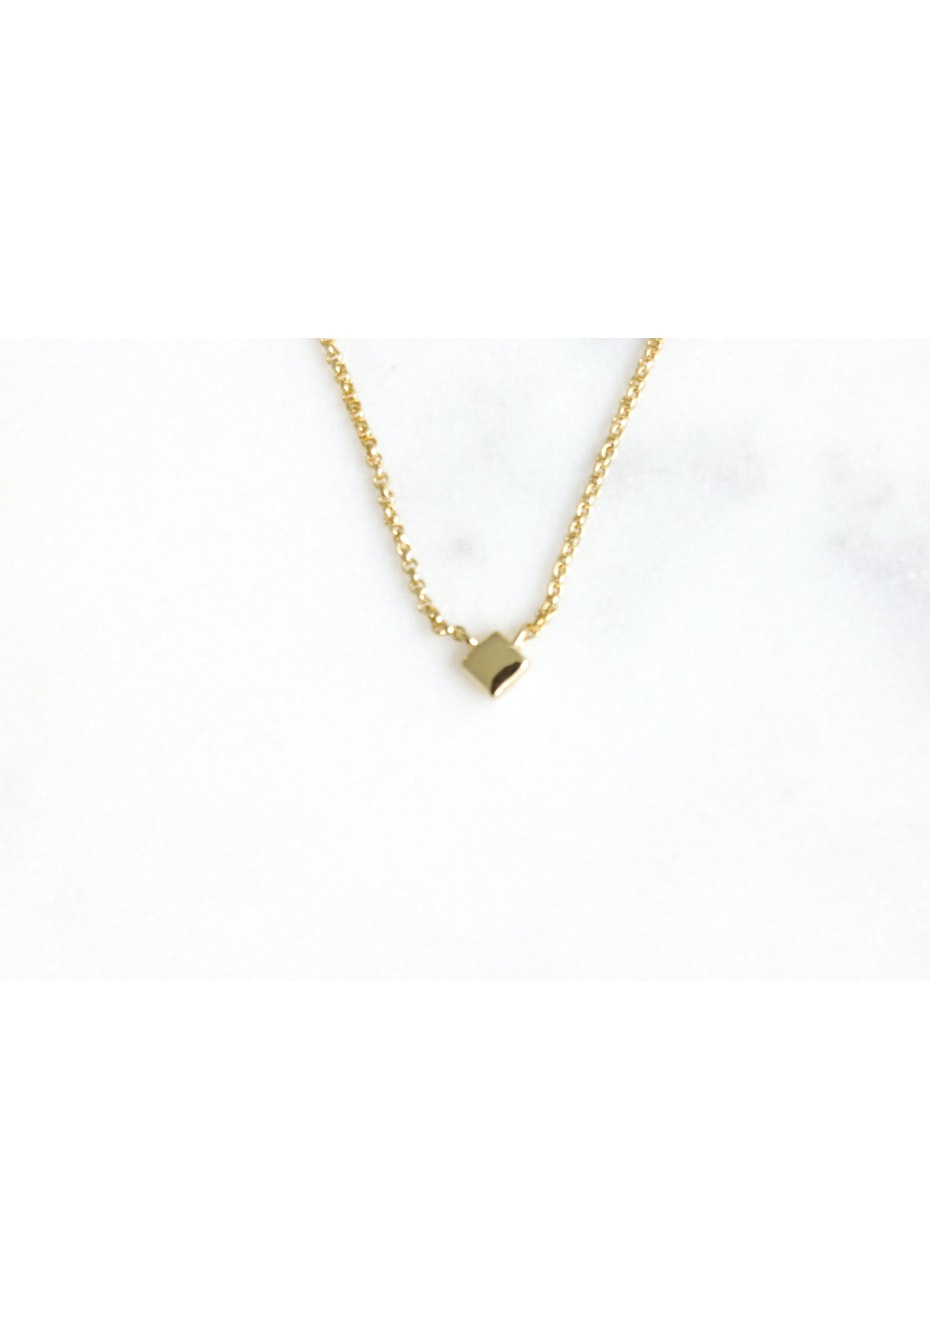 Sqaure Necklace - Gold Plated